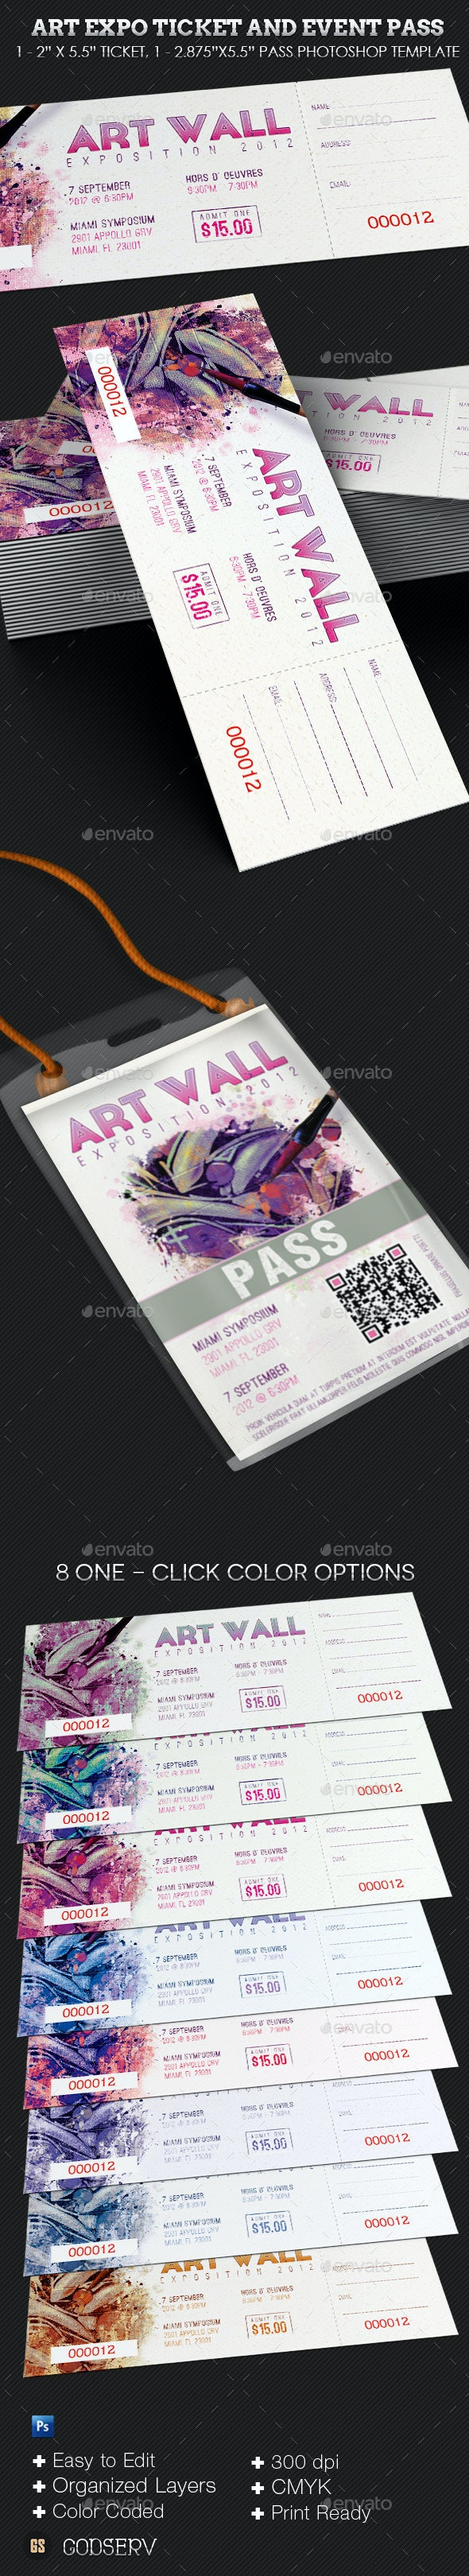 Art Expo Ticket Event Pass Template - Miscellaneous Print Templates